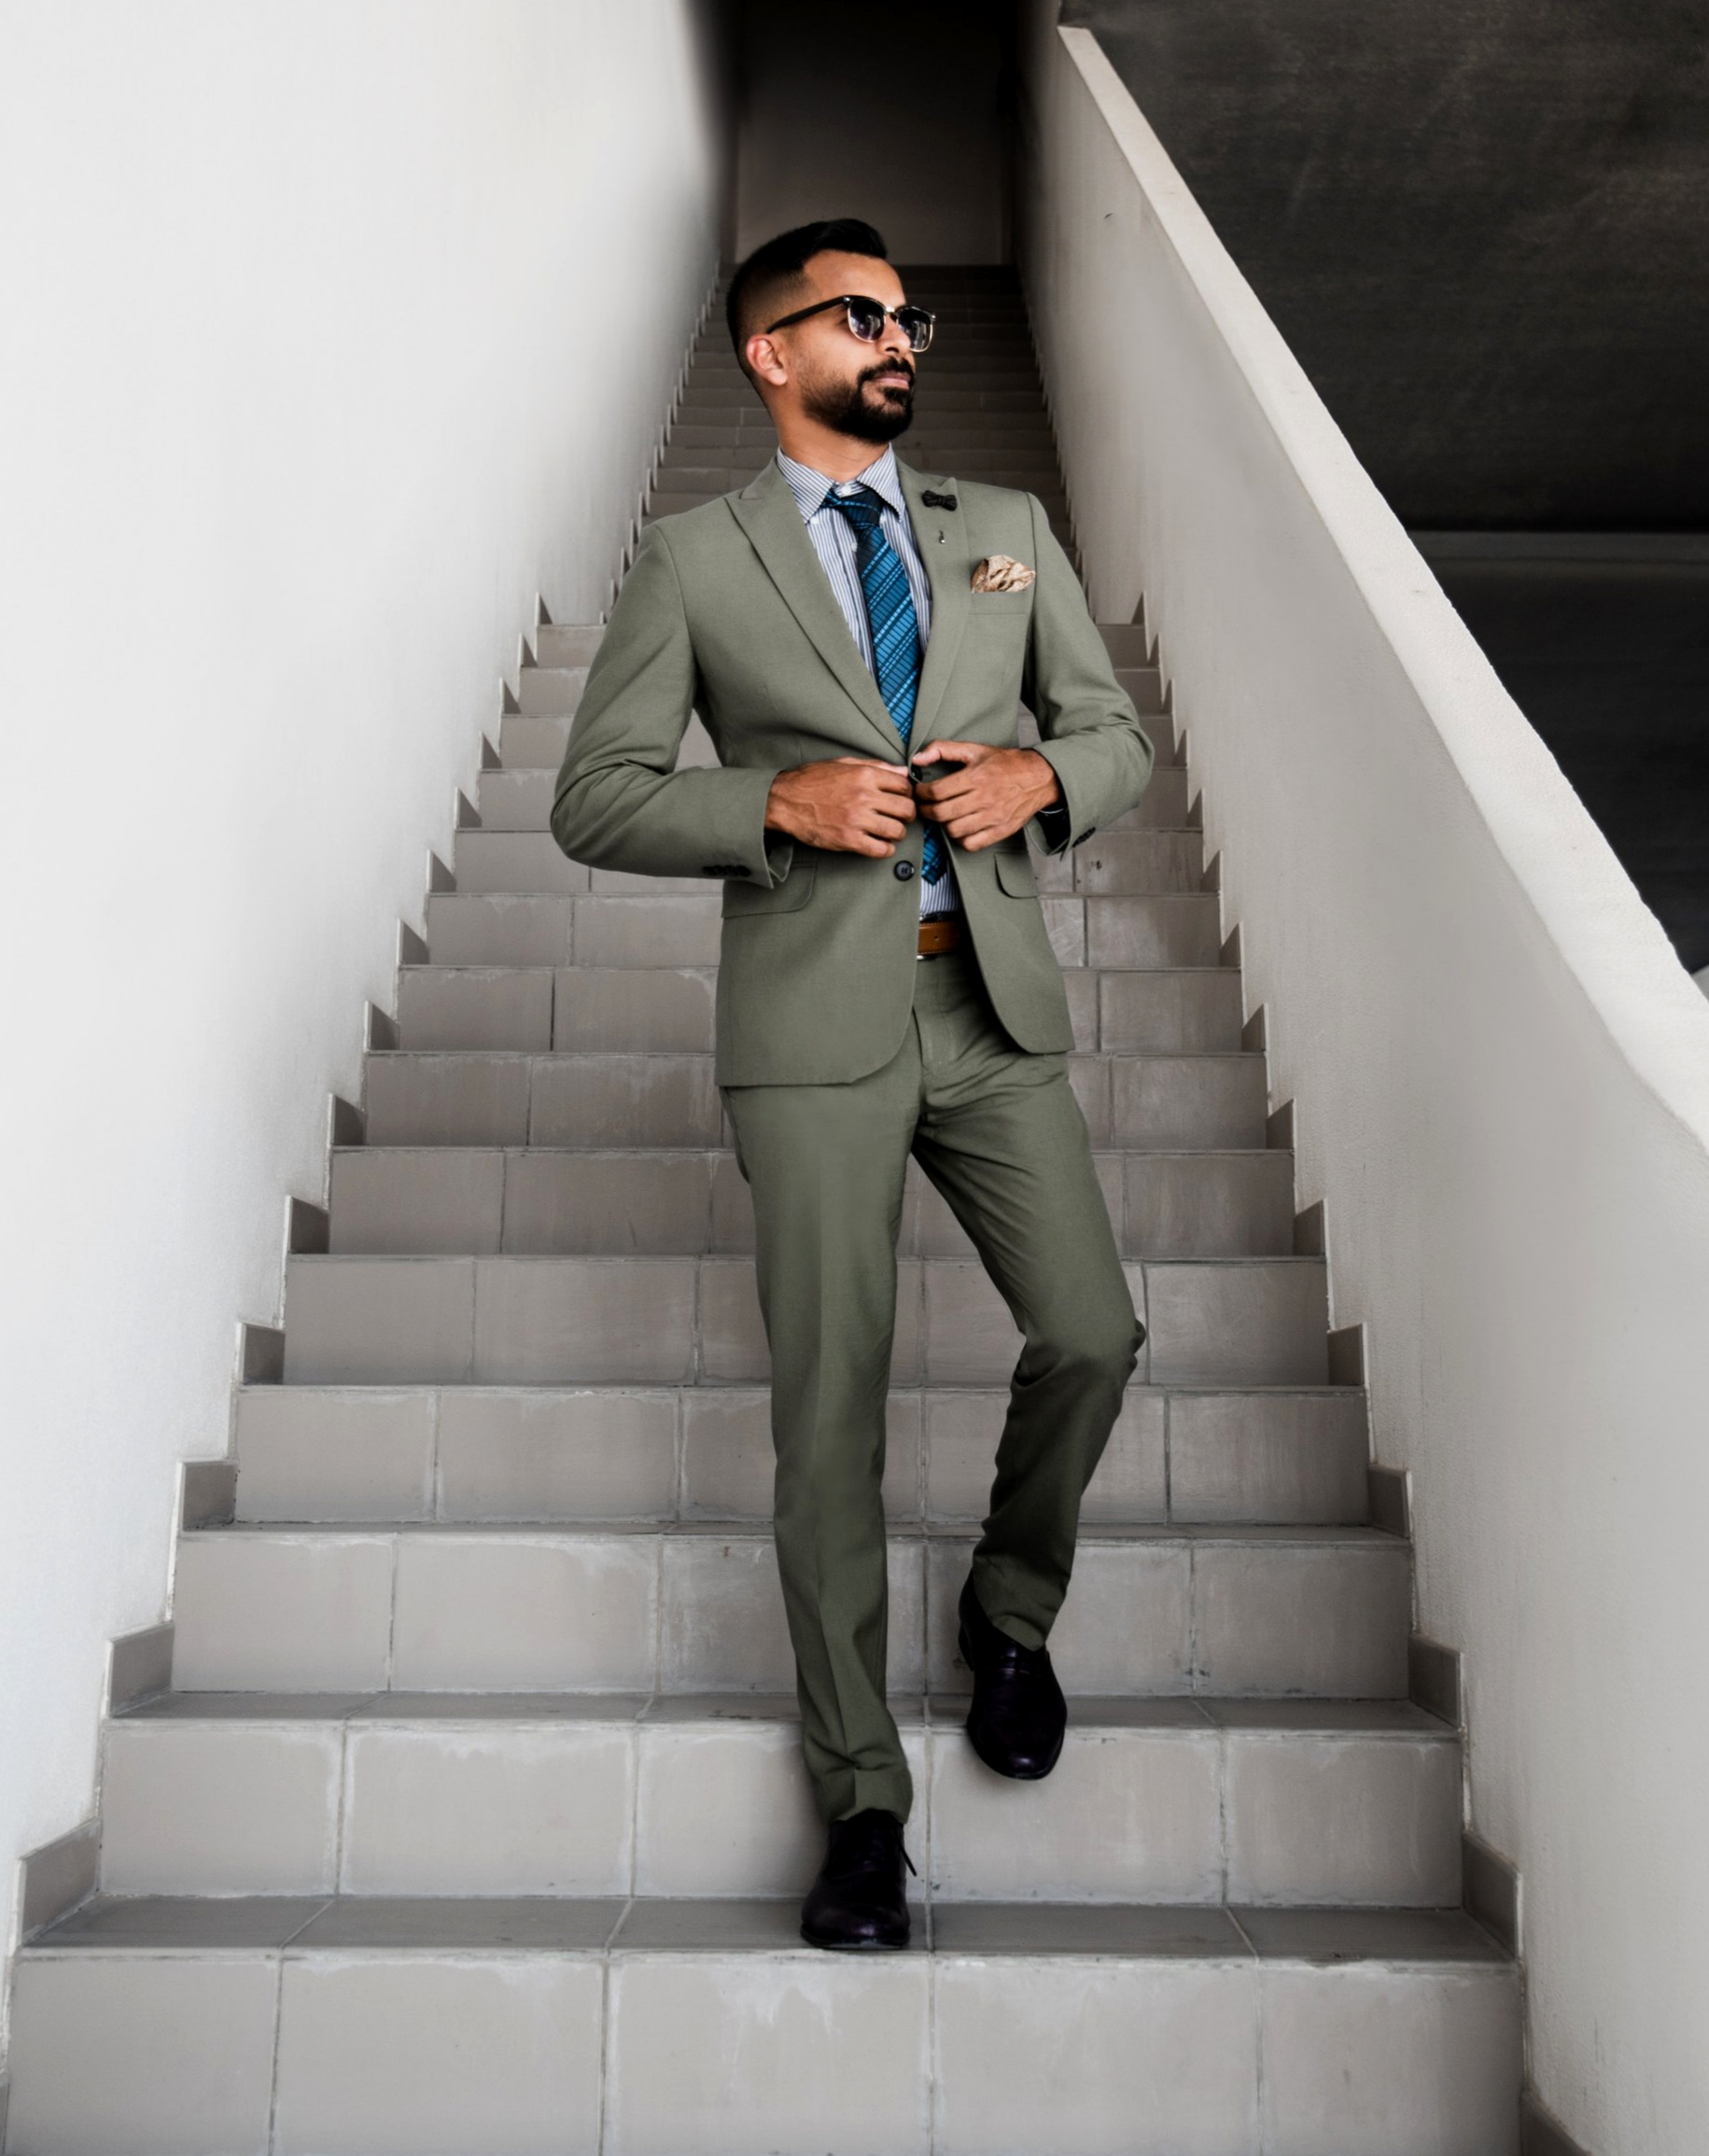 Two tone, suit & tie - Cool green suit with a same cool feel pop of color tie.